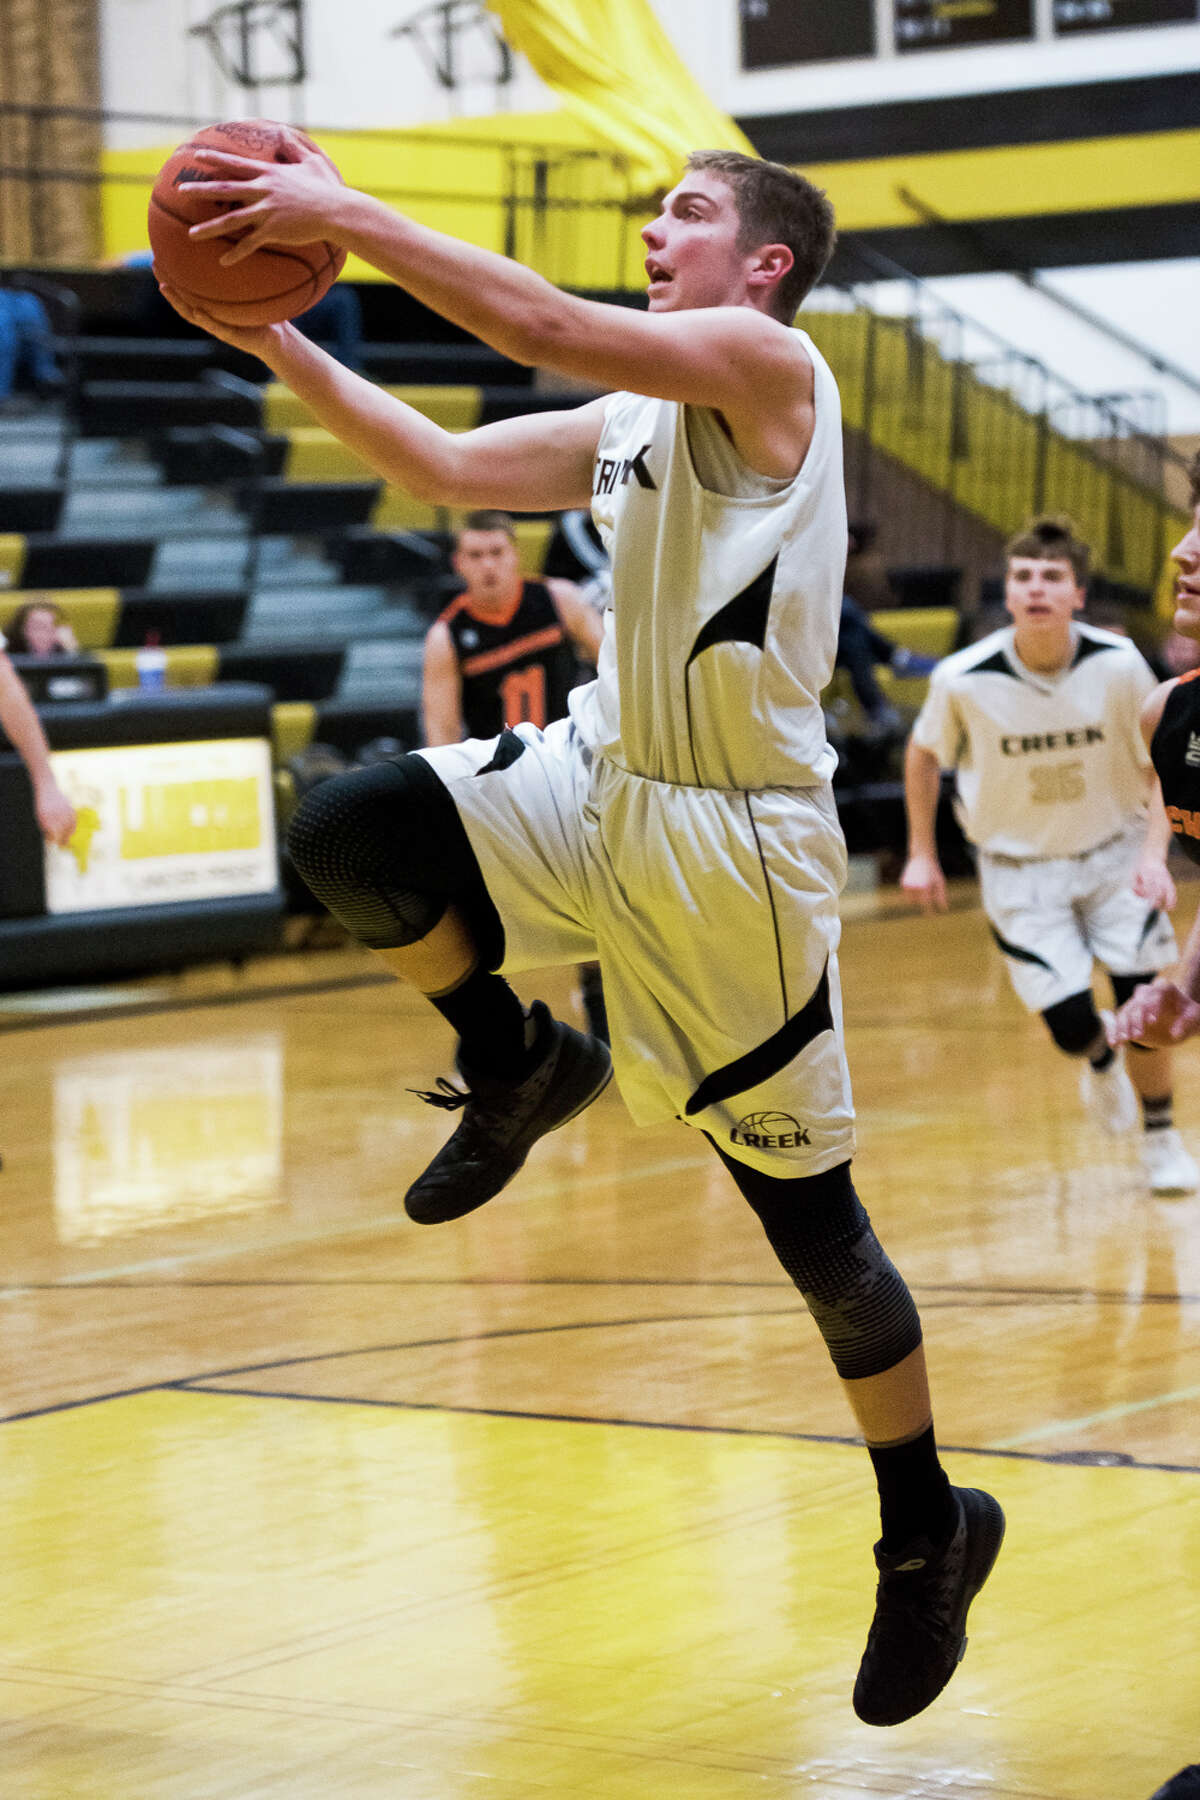 Bullock Creek senior Josh Zastrow goes for a layup during a basketball game against the Chesaning Indians at Bullock Creek High School on Monday, Feb. 12, 2018. (Danielle McGrew Tenbusch/for the Daily News)